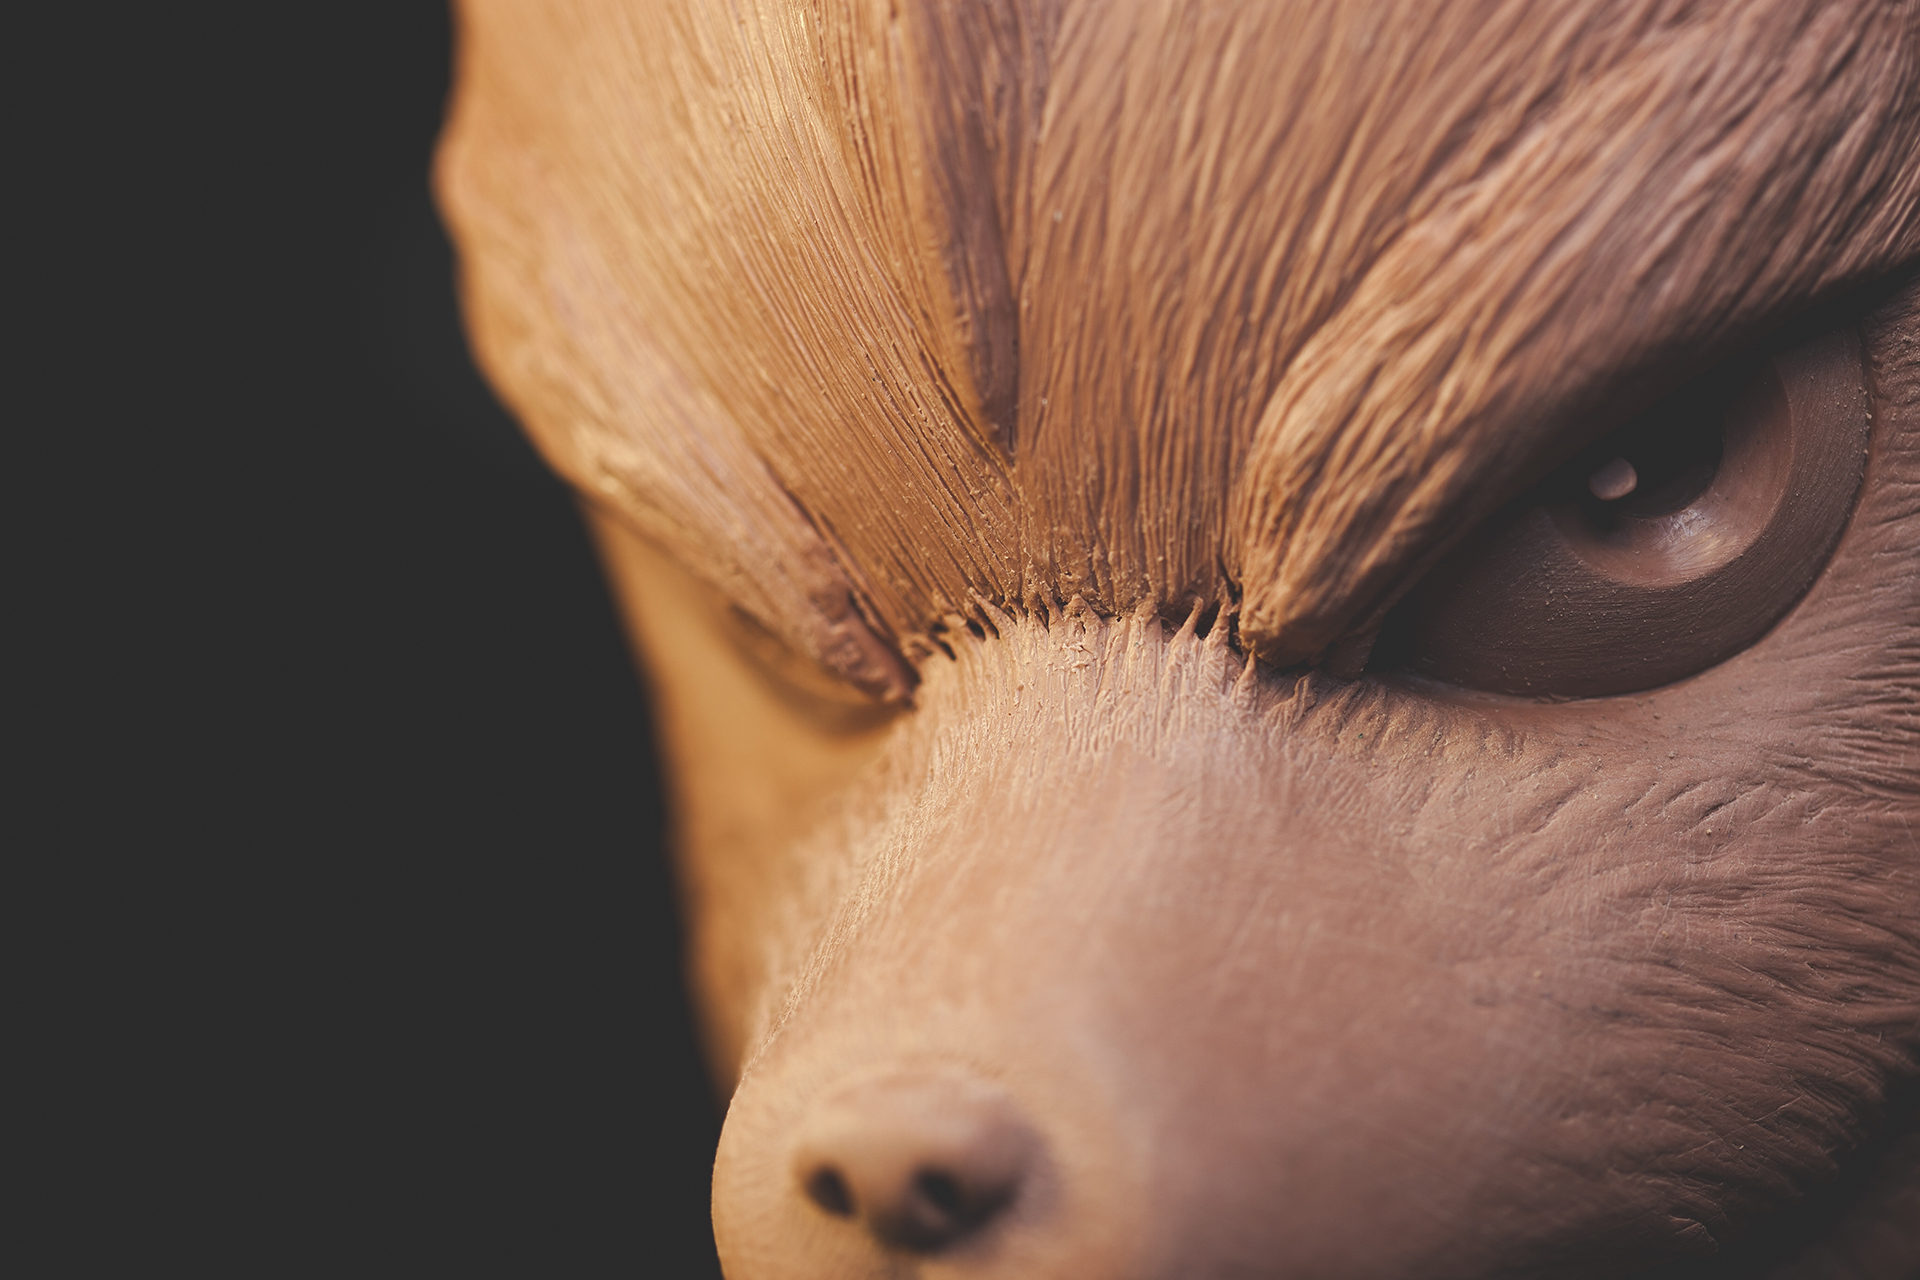 Fox McCloud from Starfox by sculptor Chris Vierra of Sculpture_Geek